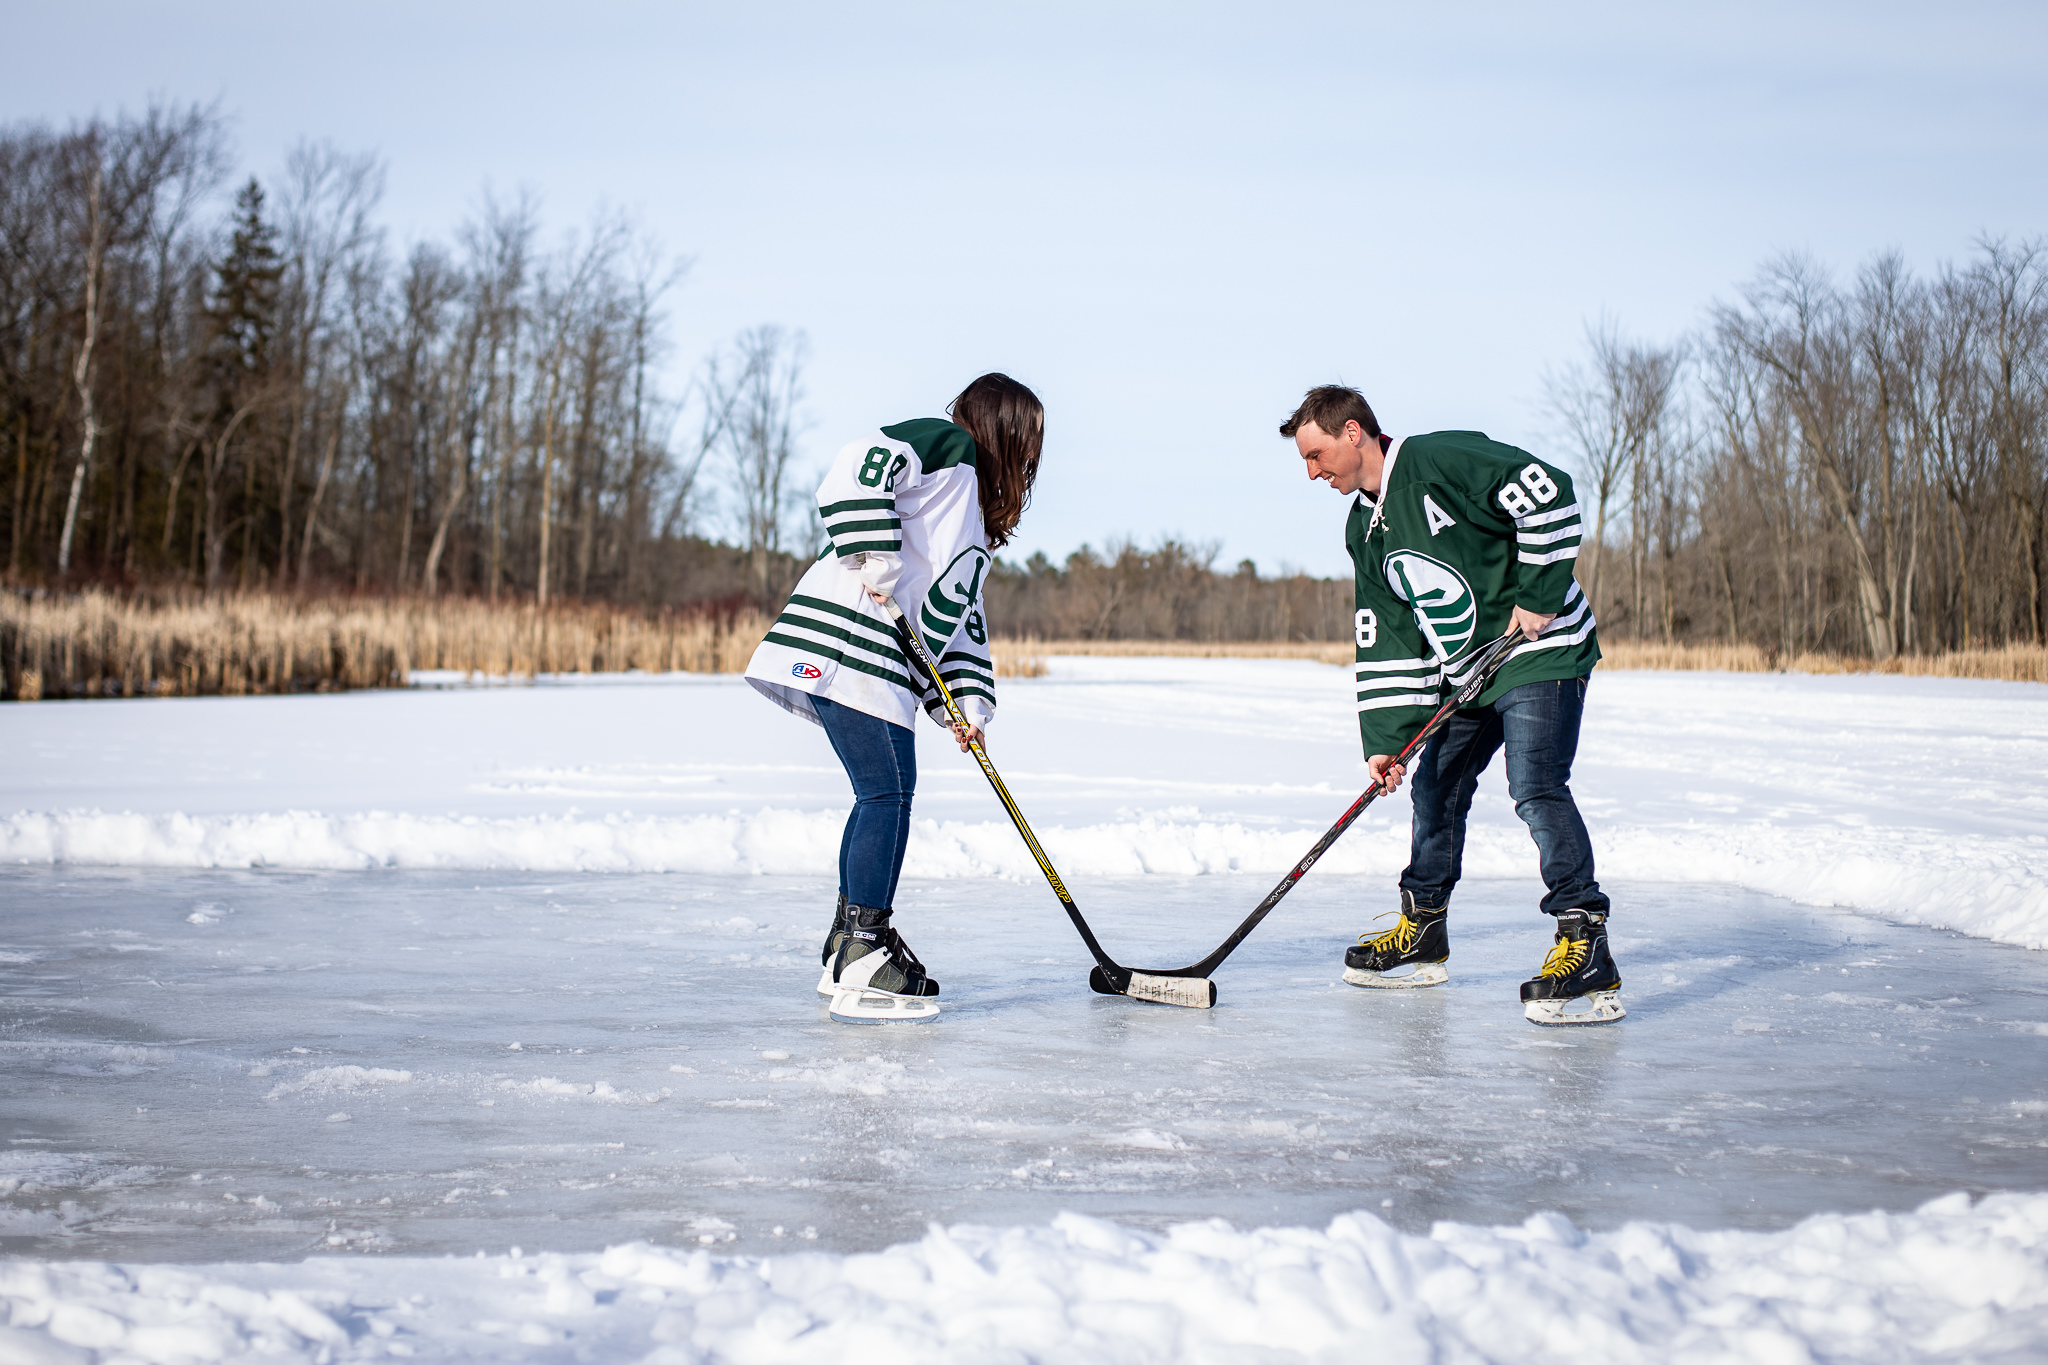 ice-skating-hockey-engagement-photos-7.jpg